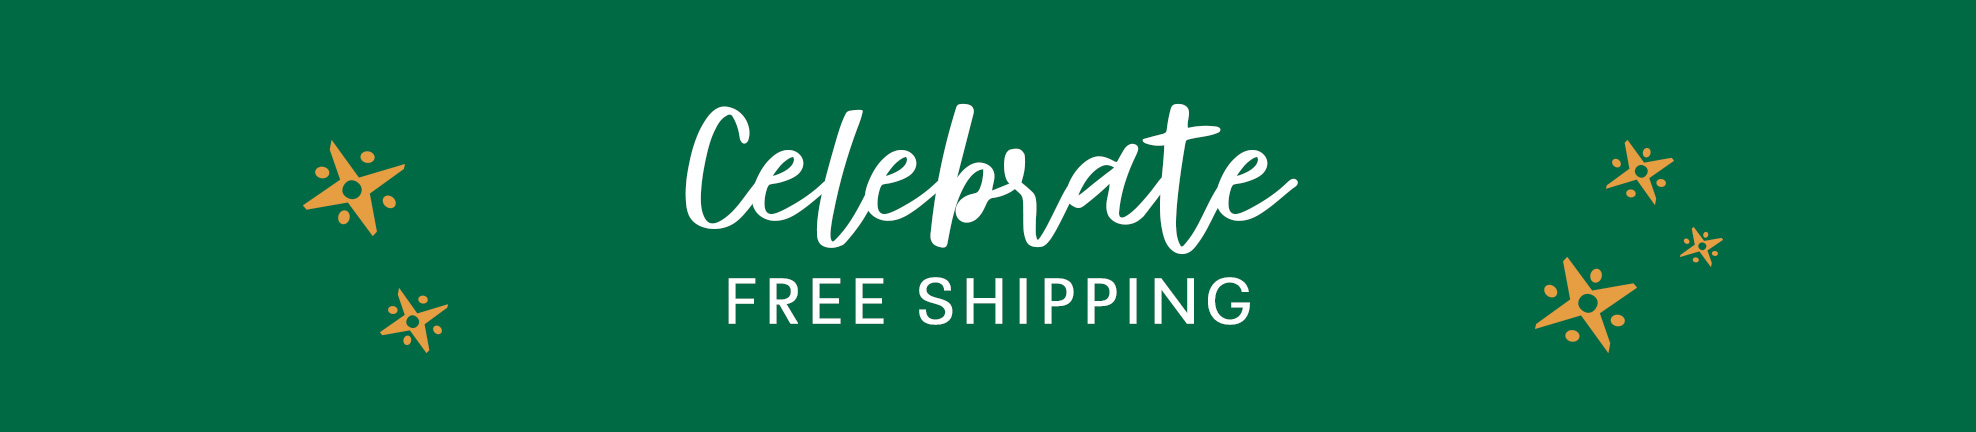 Shop with R.M.Williams & Free Shipping this Christmas